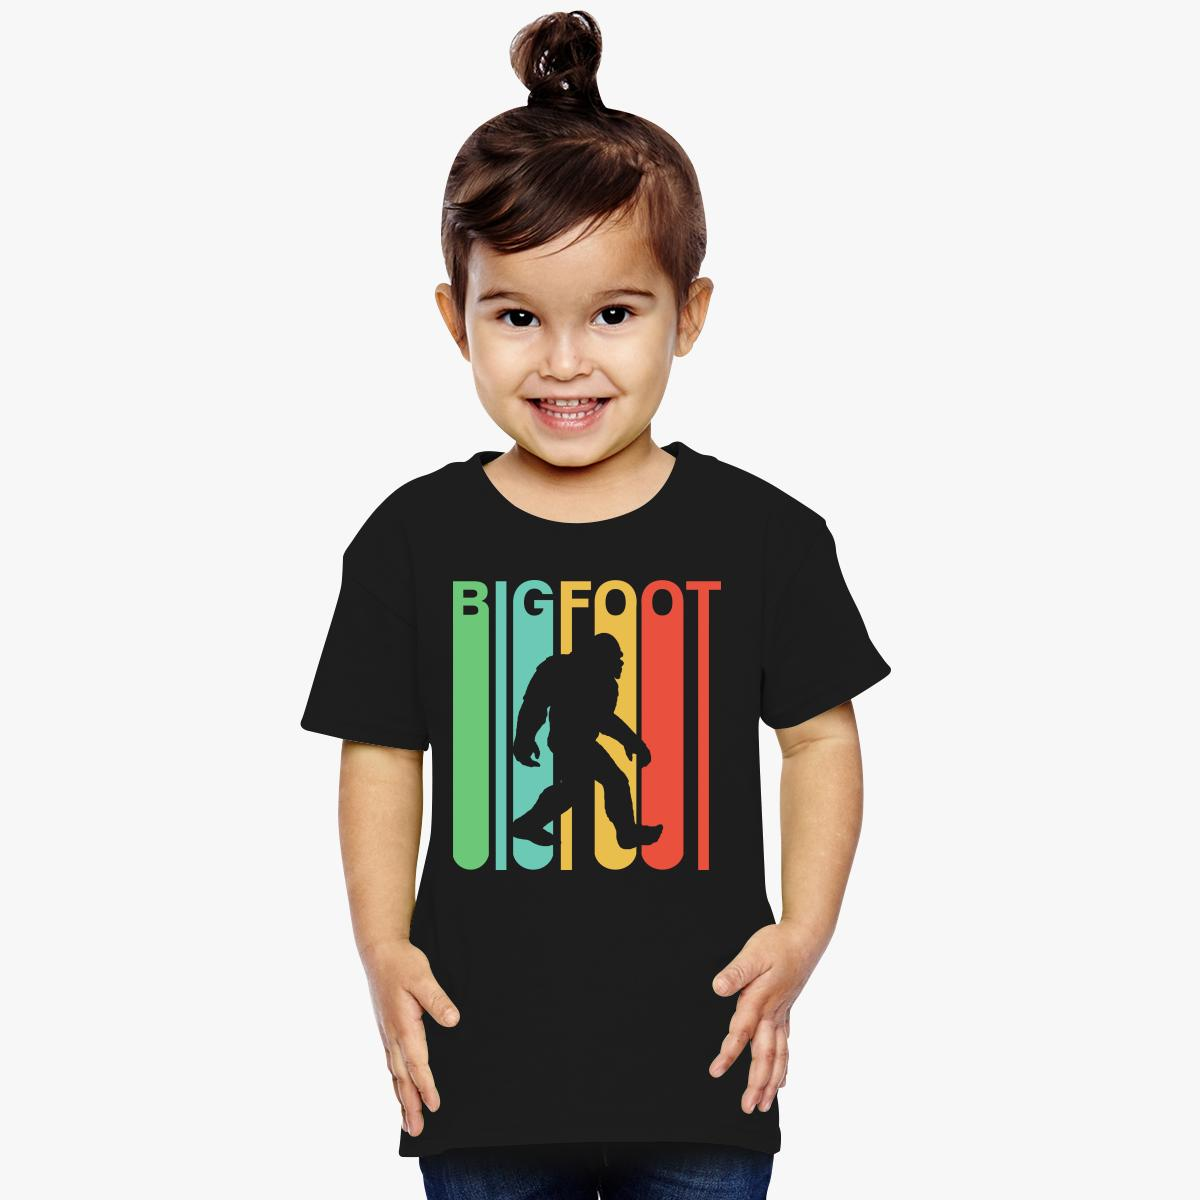 1200x1200 Vintage Retro 1970s Style Rainbow Bigfoot Silhouette T Shirt